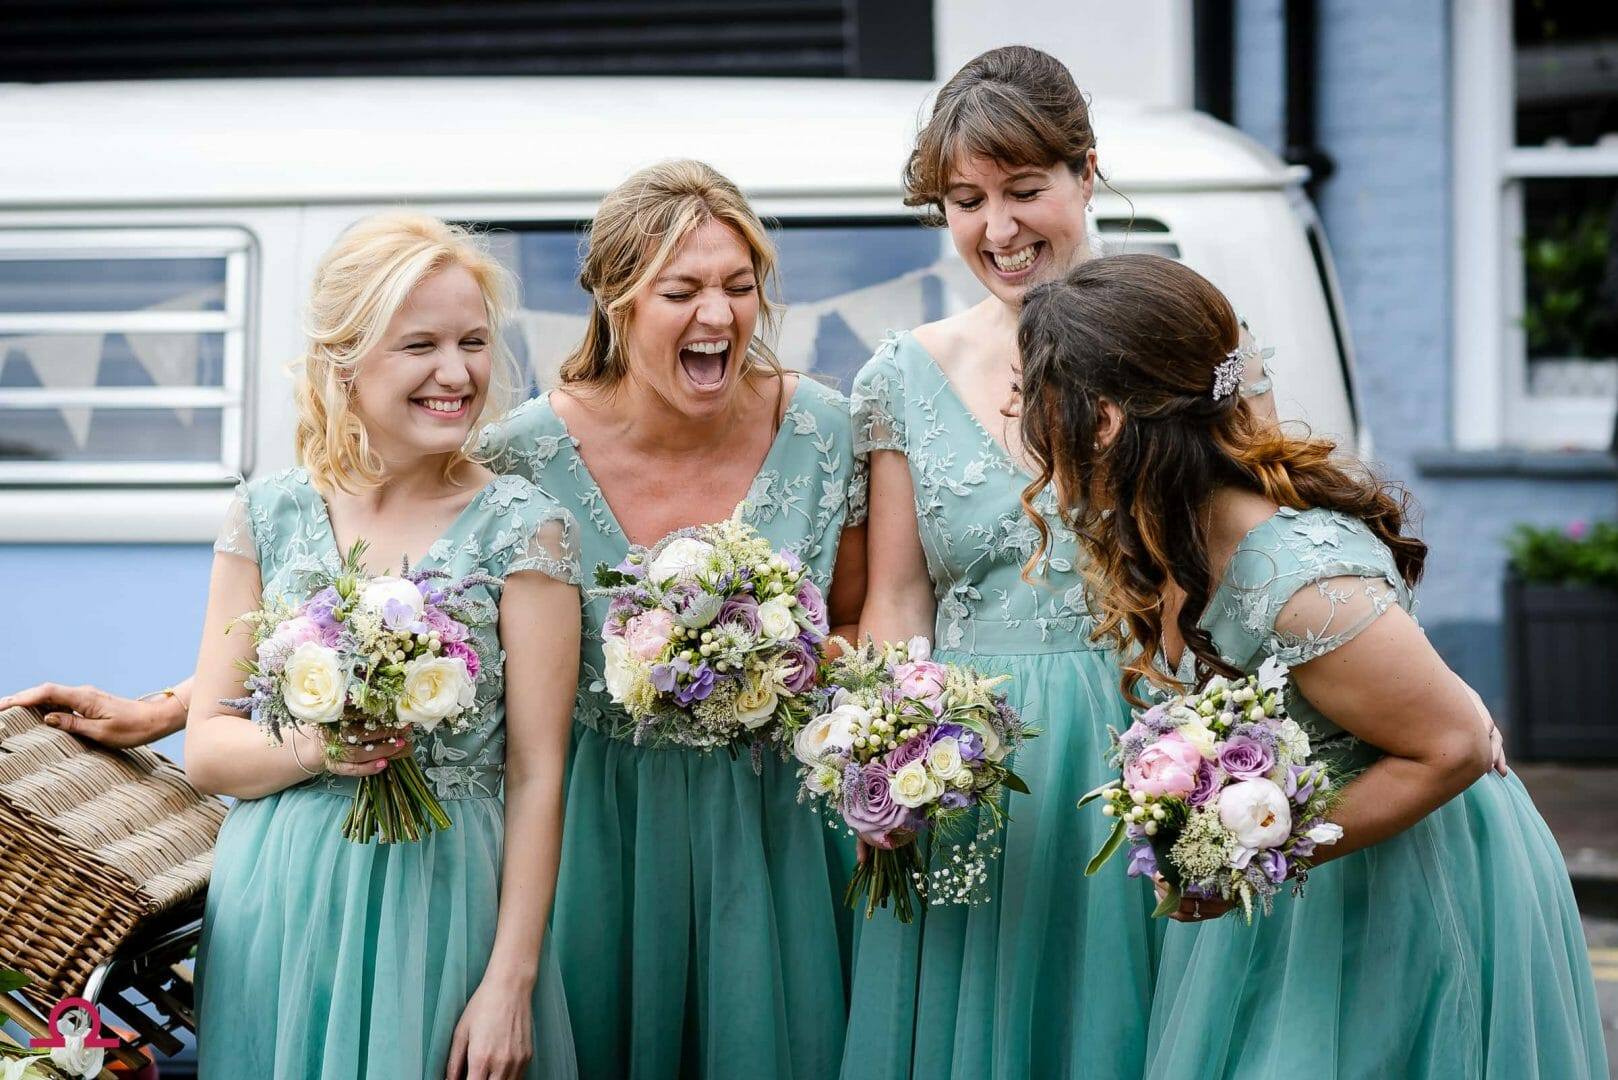 Dorset-Dubhire-wedding-photography